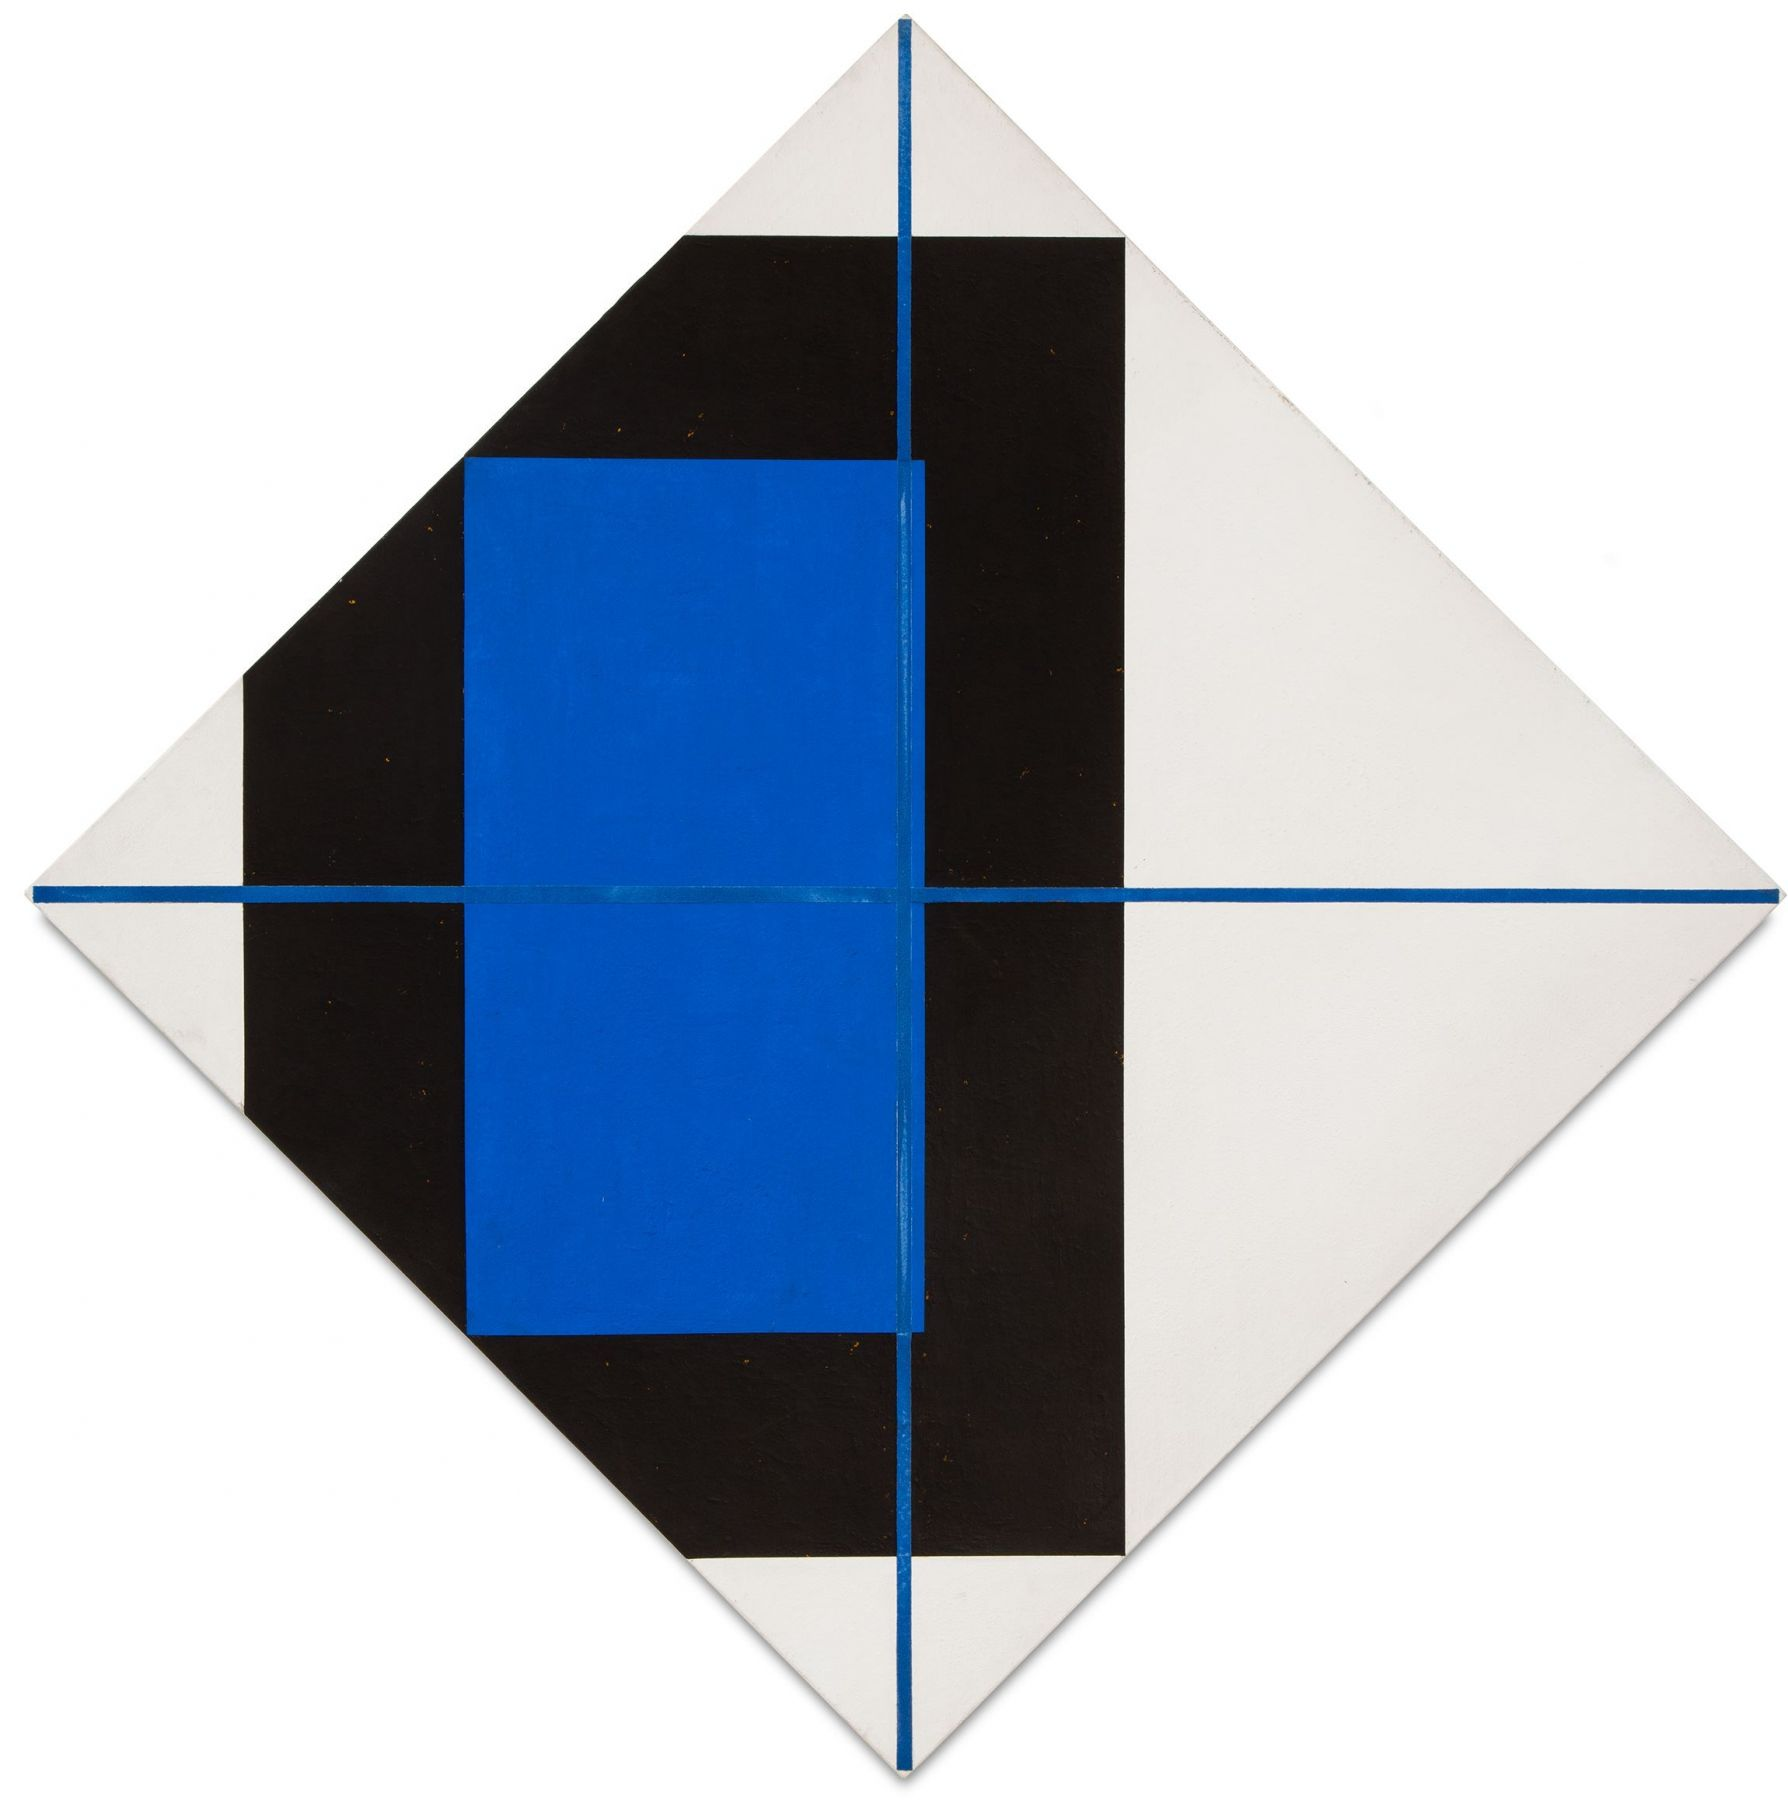 Harvey Quaytman, Hone, 1988, acrylic and ground glass on canvas, 65 x 65 inches (courtesy of Van Doren Waxter)